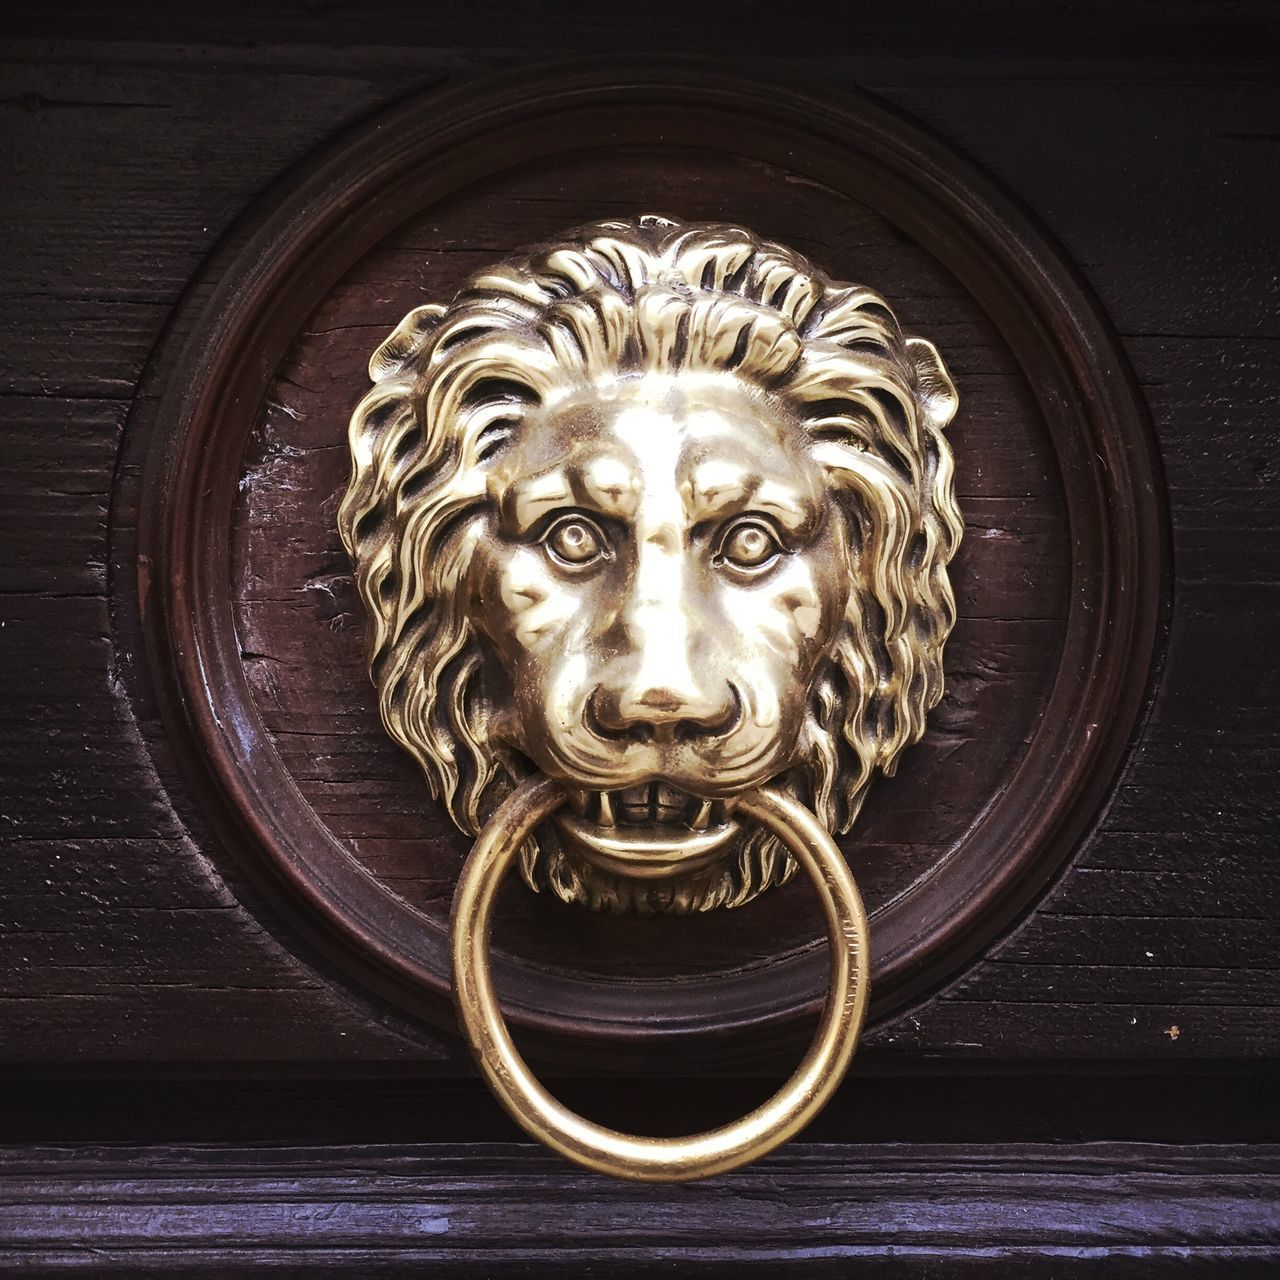 Lion Knocker Door Knocker Golden The Street Where We Live Urbanphotography